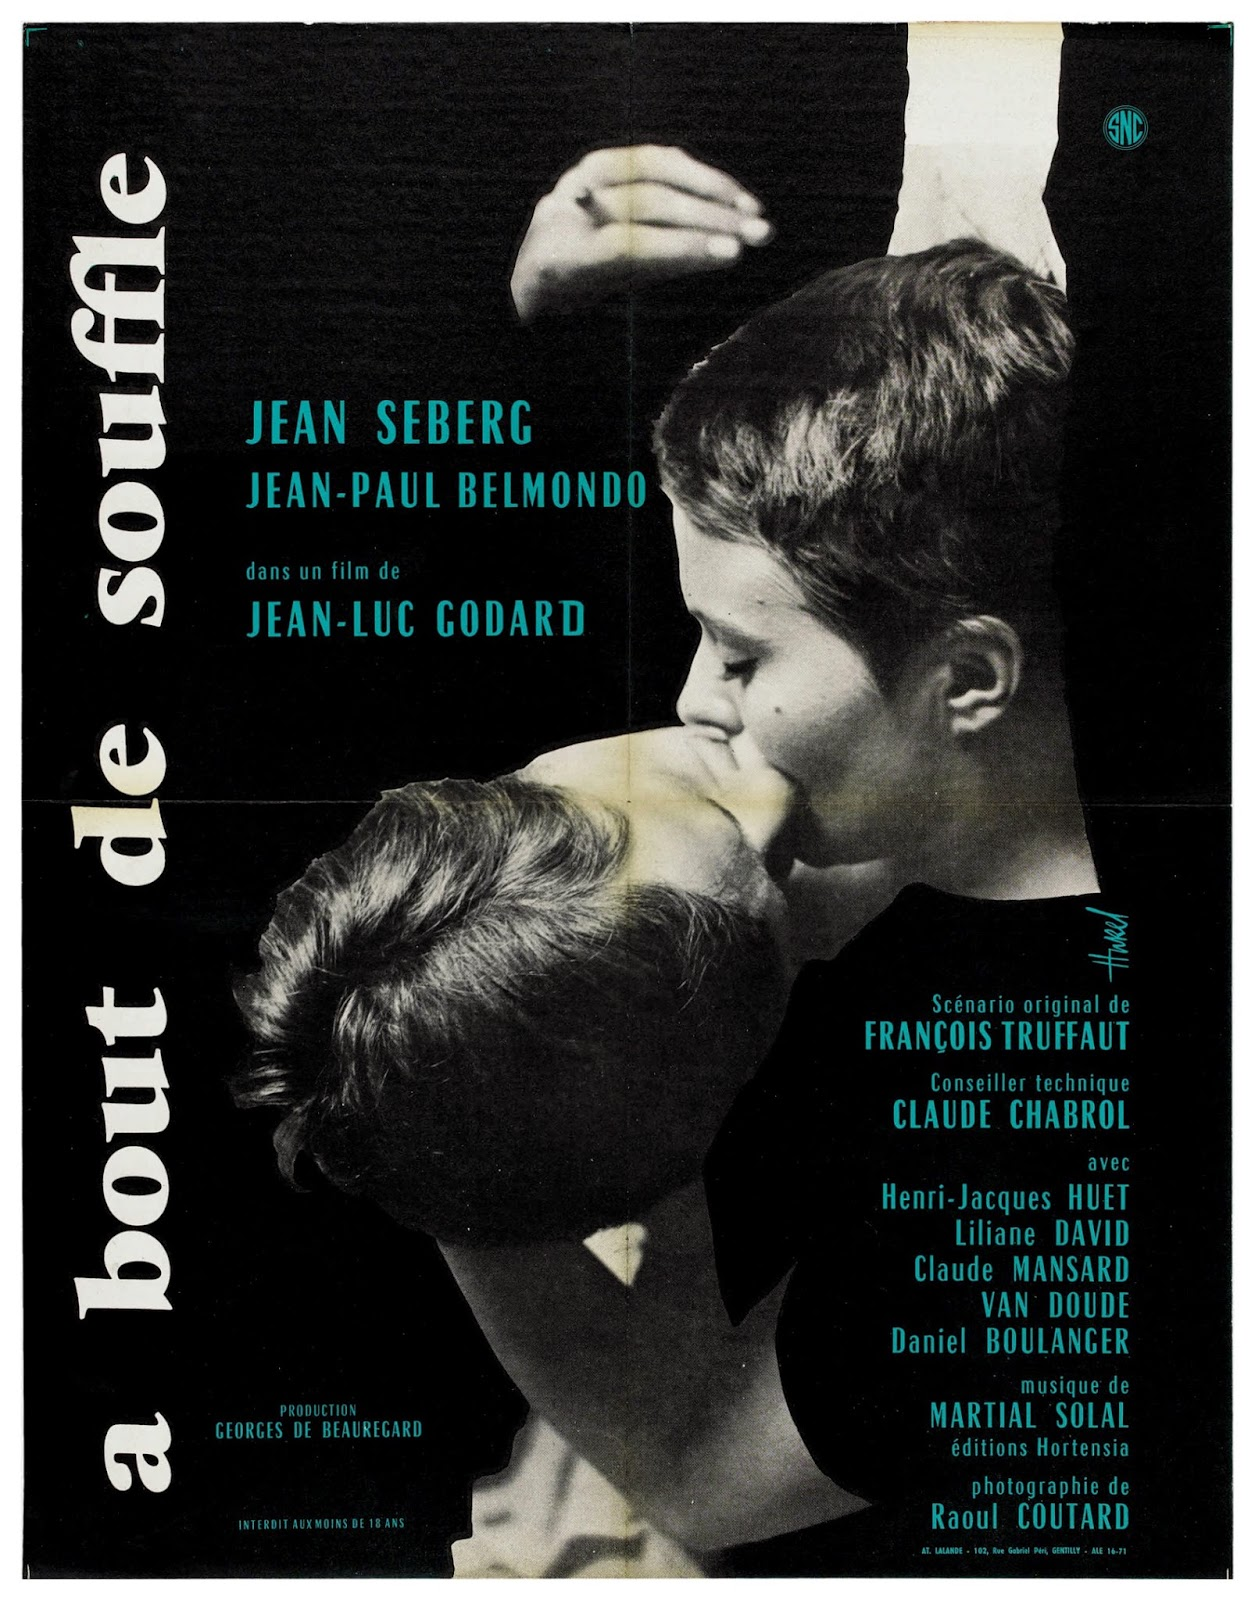 poster for A Bout de Souffle directed by Jean-Luc Godard